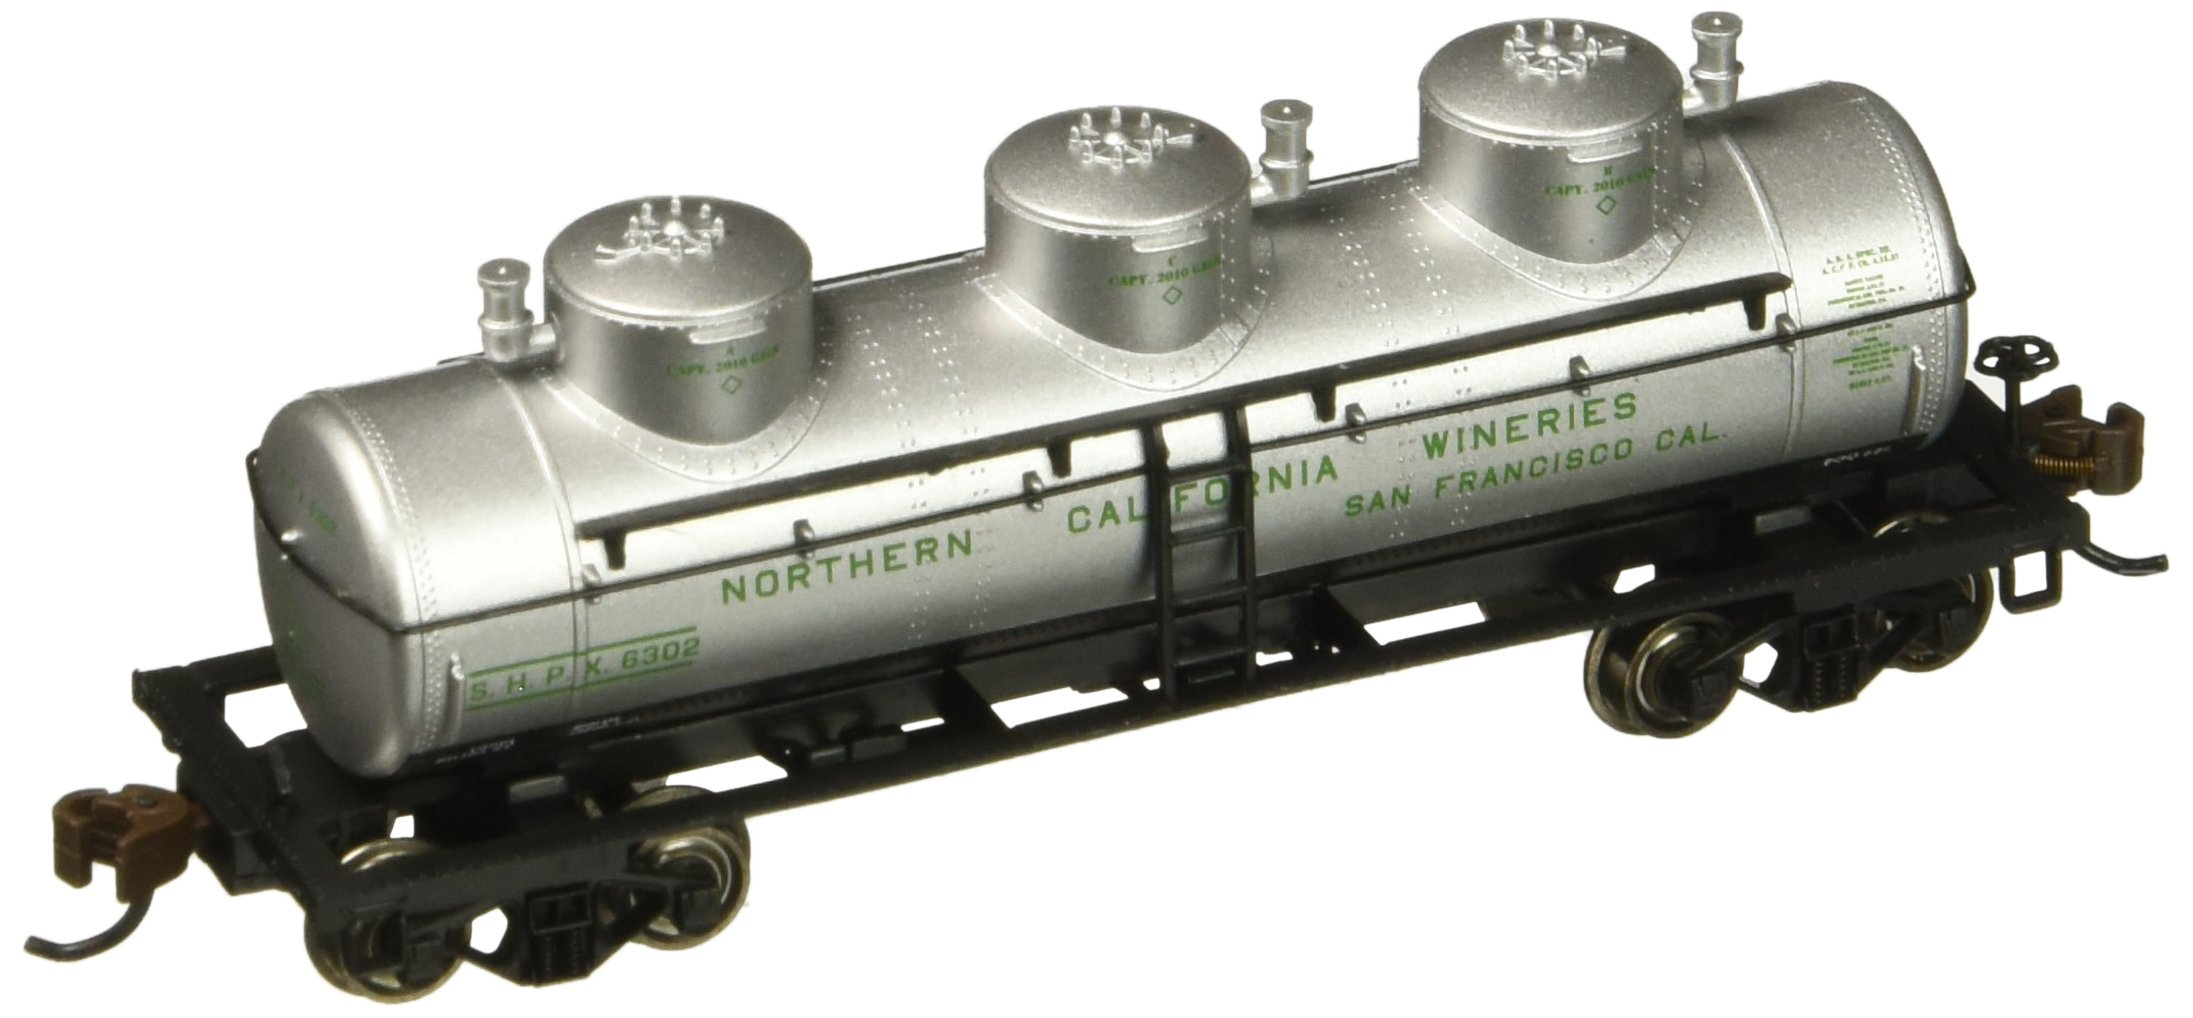 Bachmann Industries 3 Dome Tank Northern California Wineries Car, N Scale